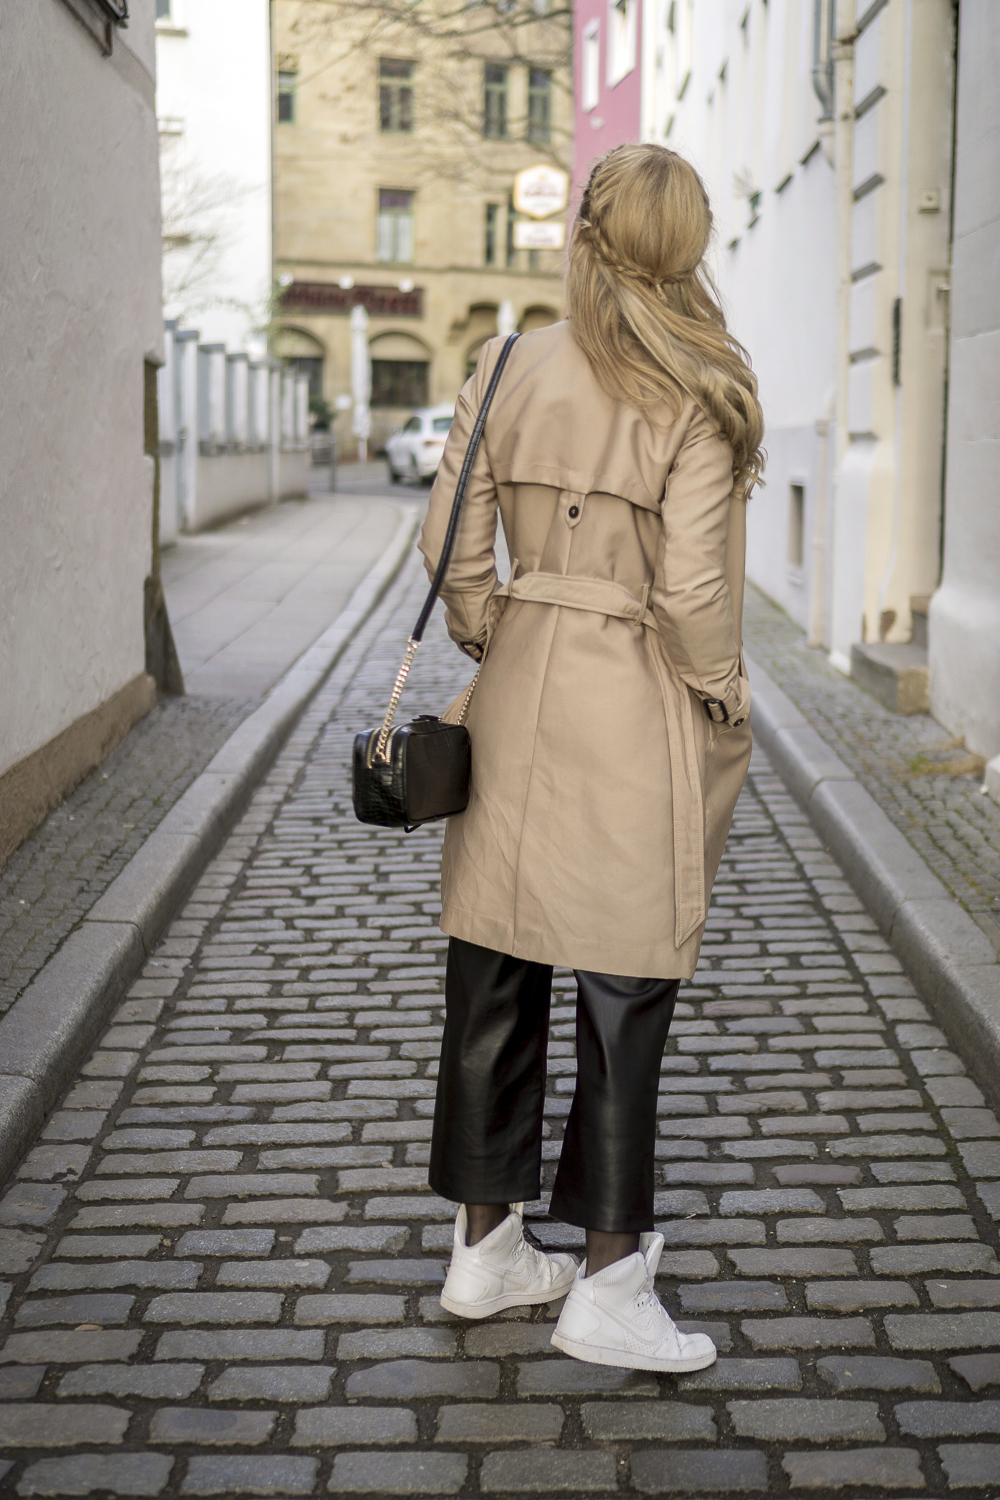 wearing beige trench coat from zara, white nike sneakers, mango leather pants. OOTD outfit lookbook